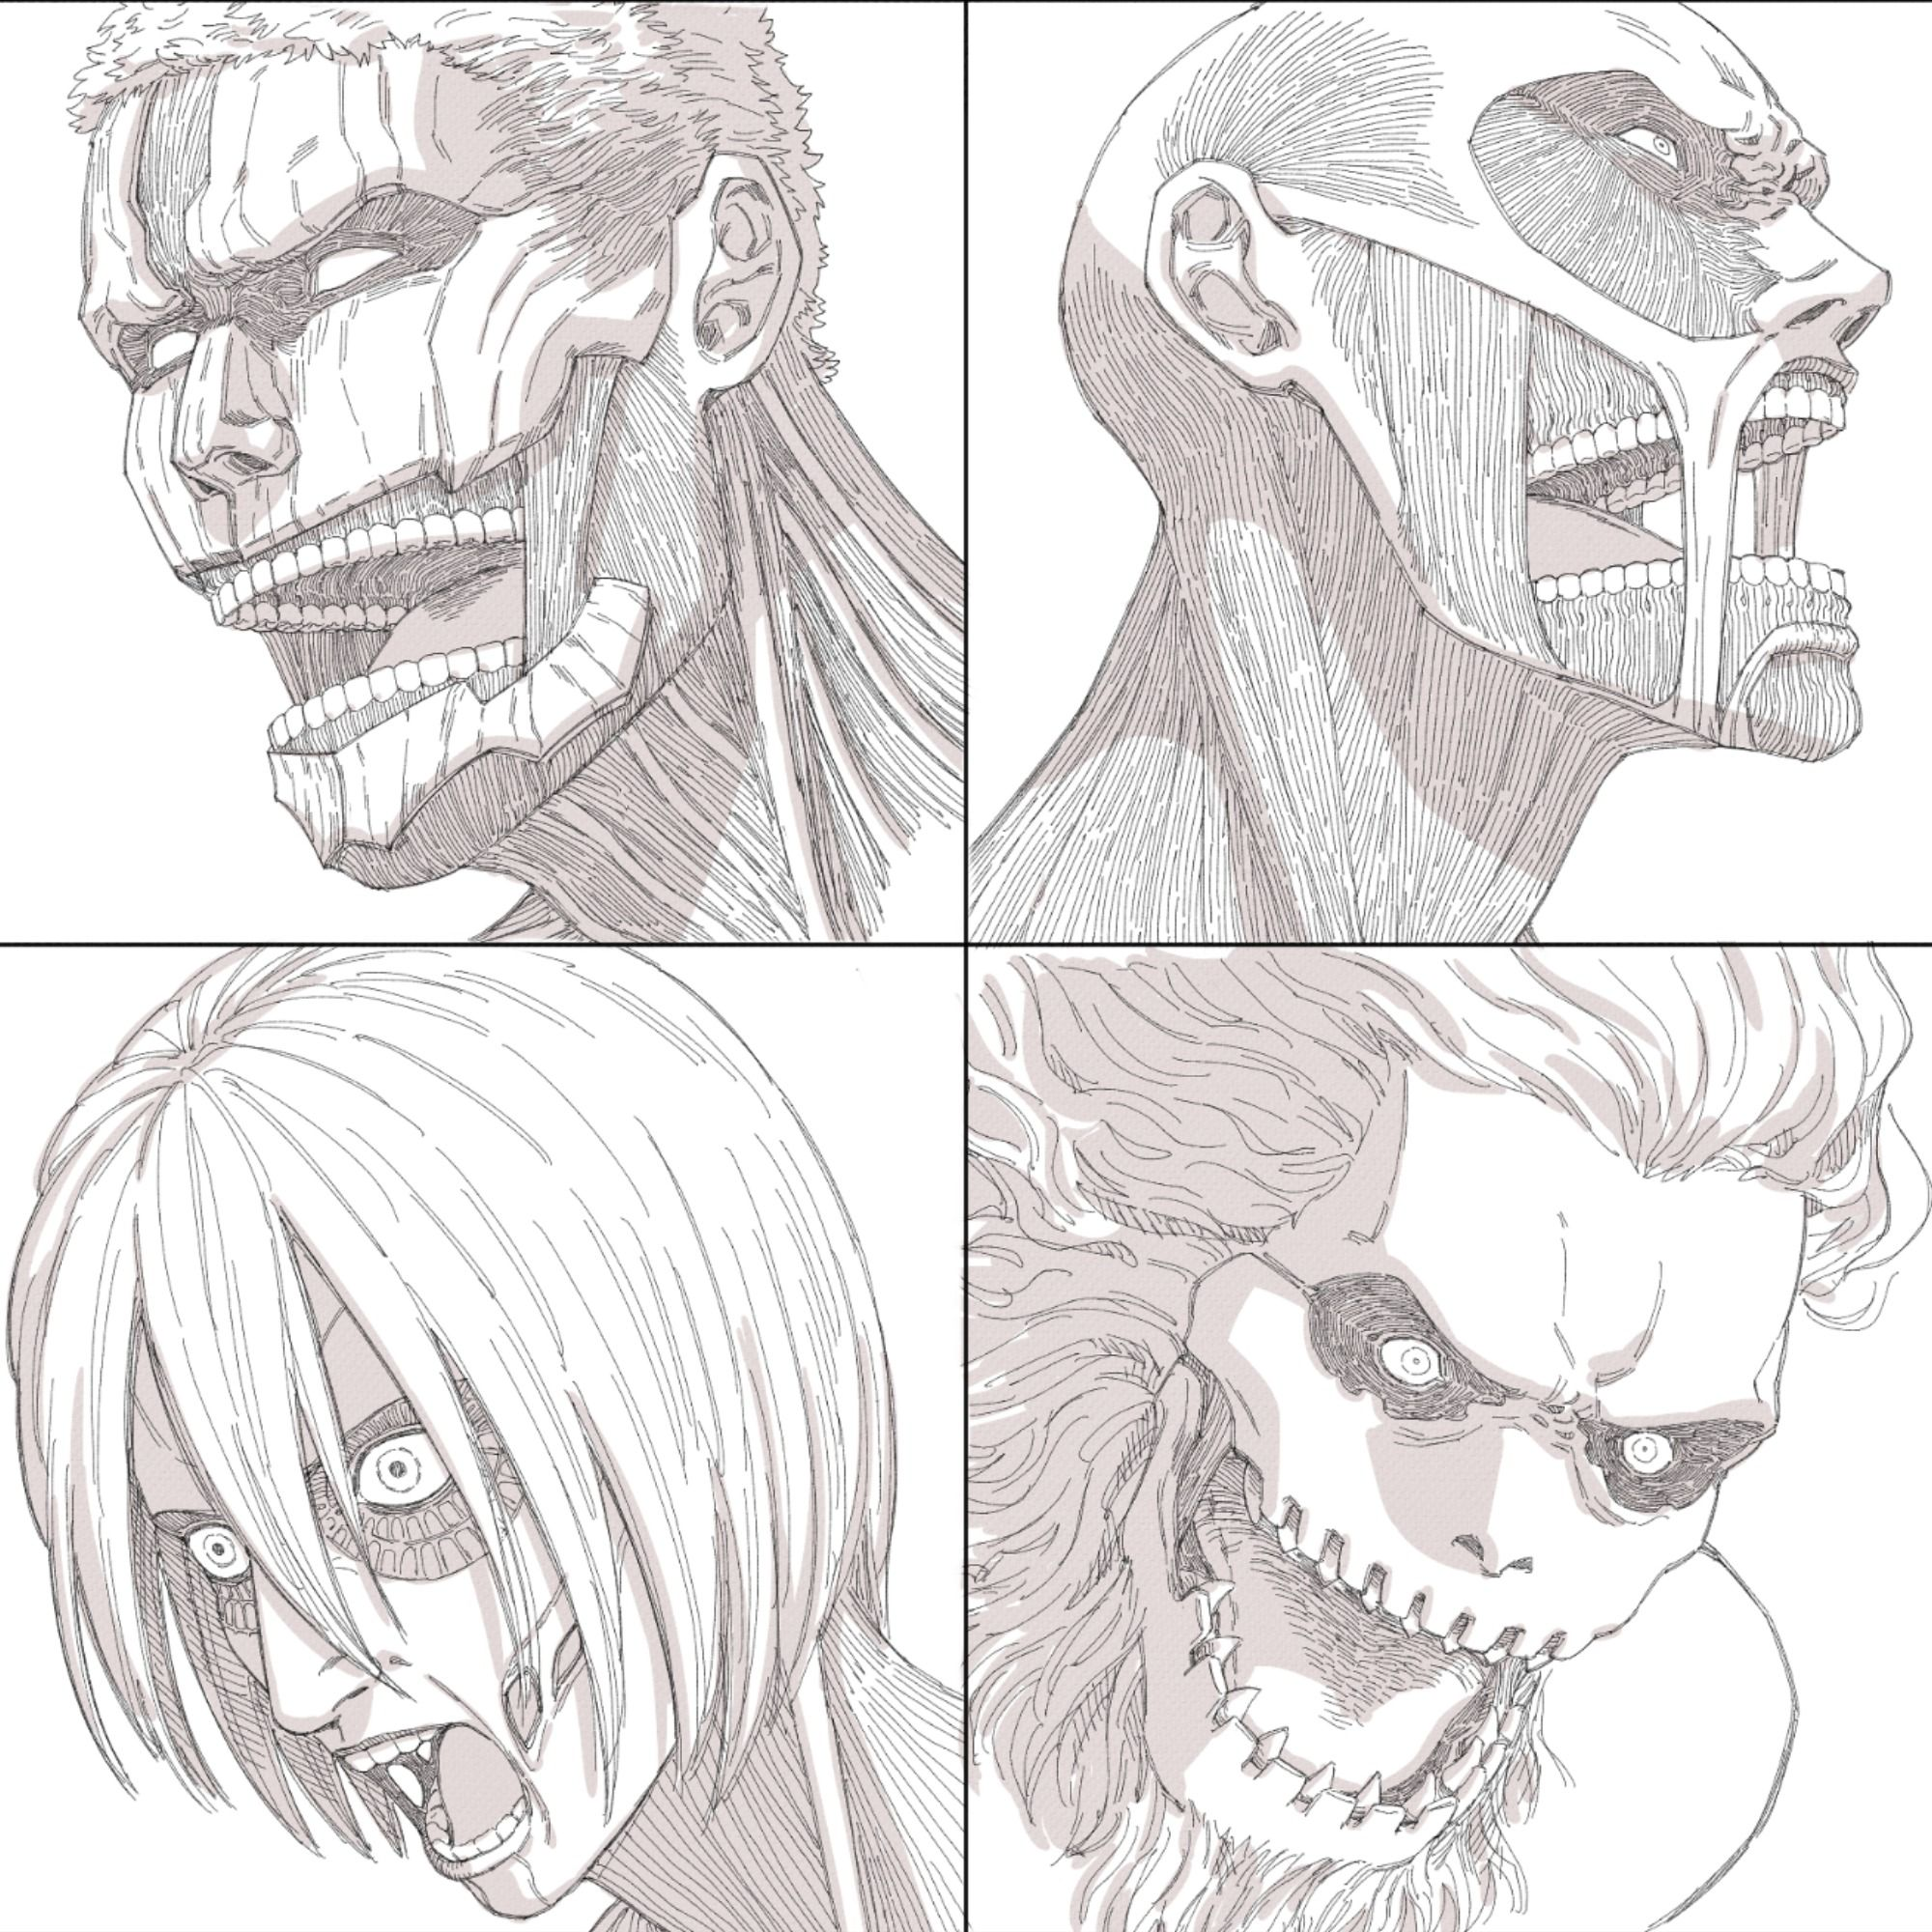 Selfpreservationmyass On Twitter In 2020 Attack On Titan Anime Attack On Titan Art Attack On Titan Fanart